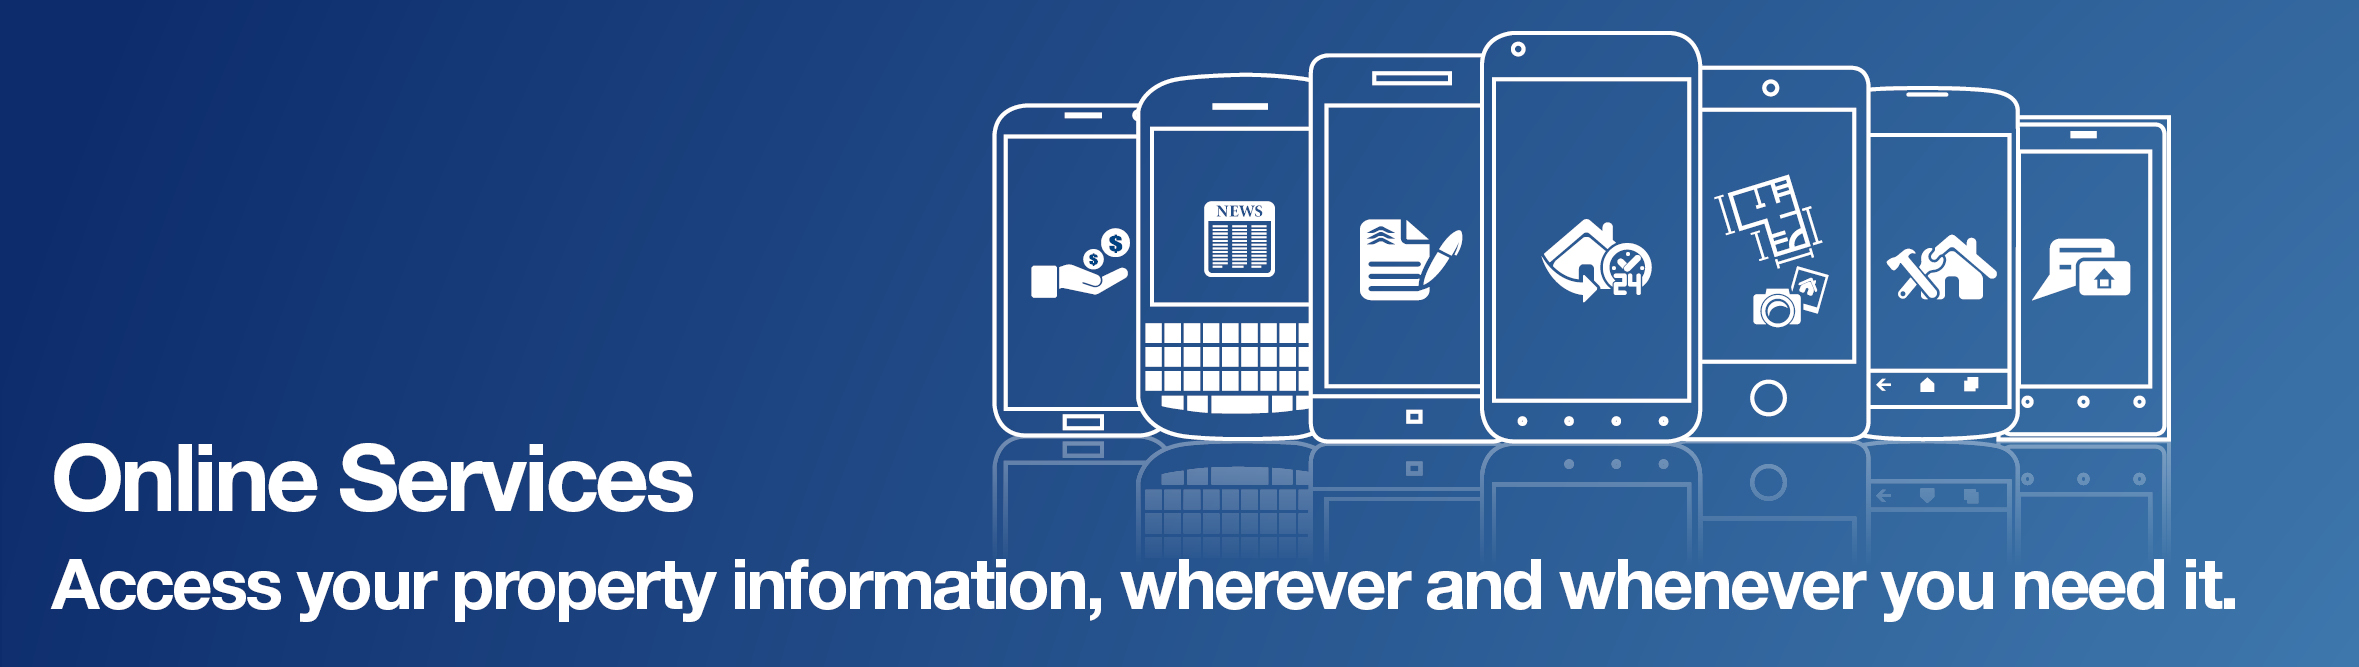 Online Services banner showing various mobile devices.